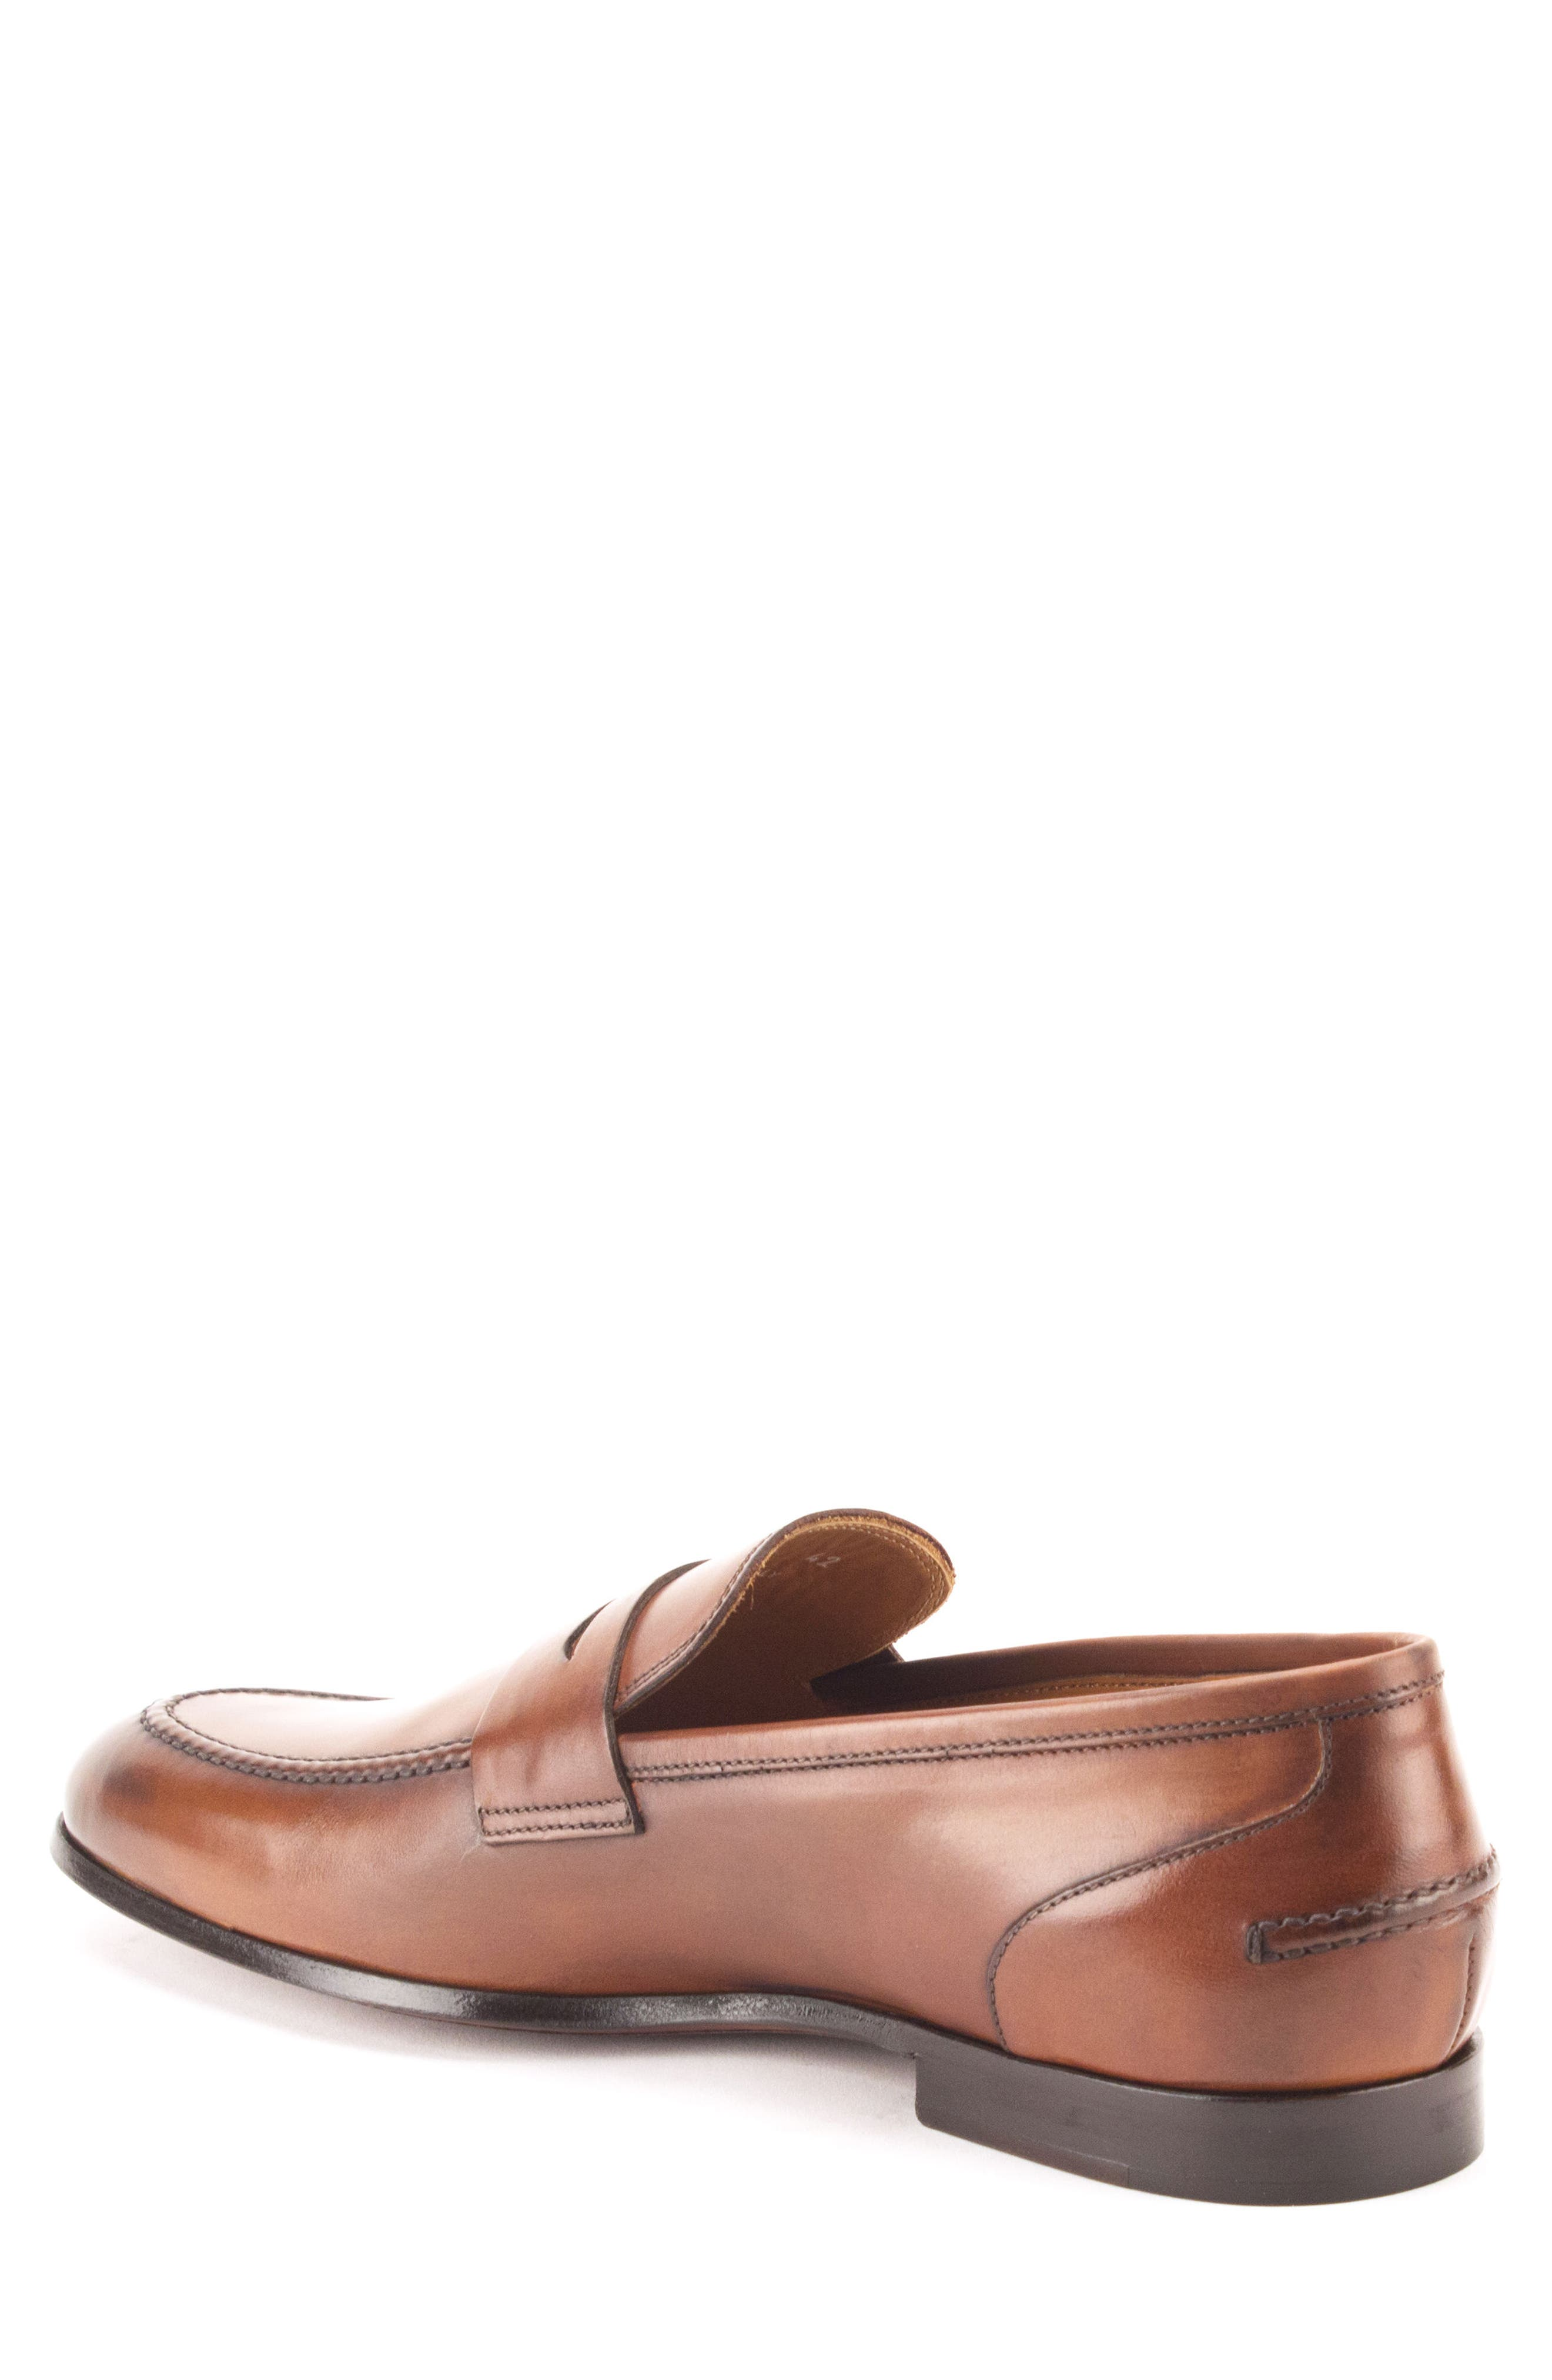 Coleman Apron Toe Penny Loafer,                             Alternate thumbnail 2, color,                             Tan Leather